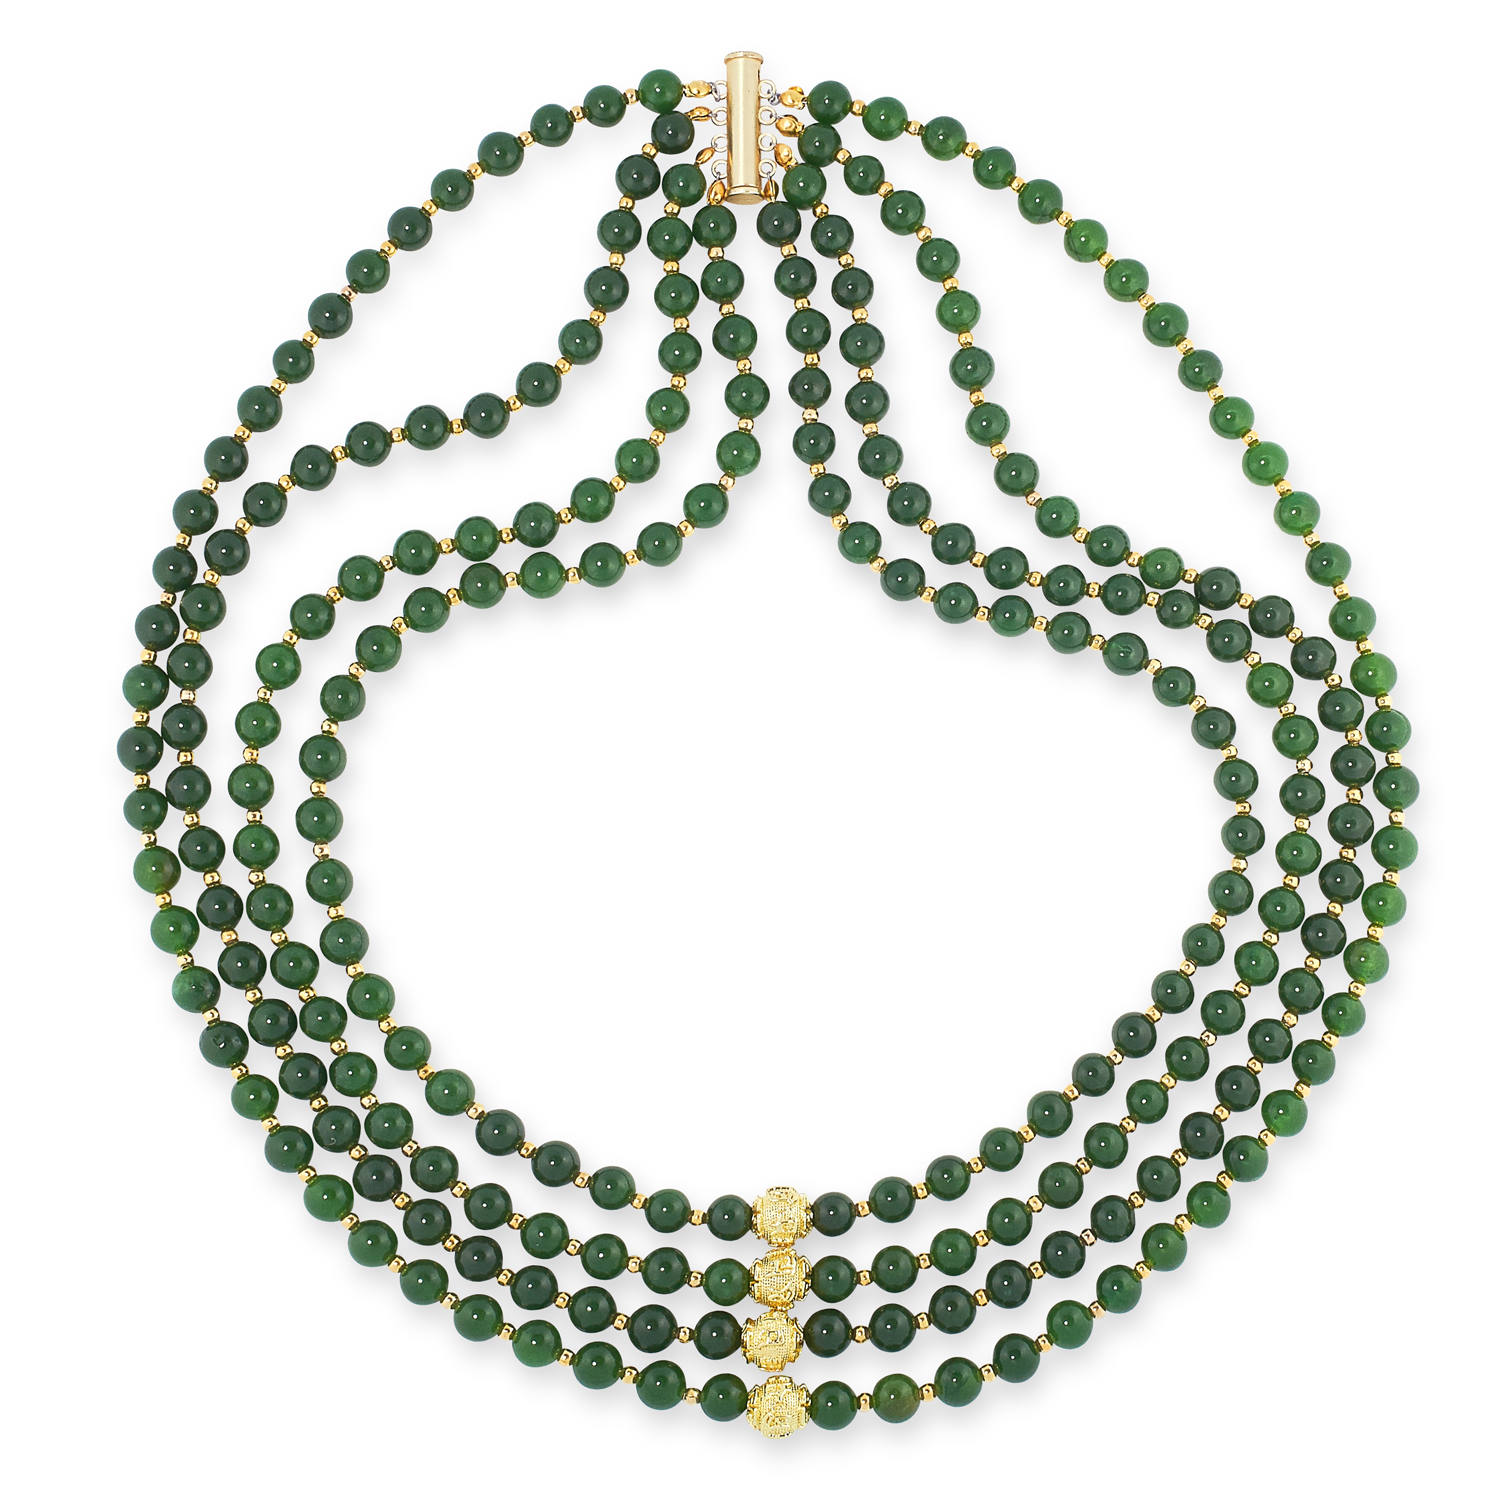 A MIXED LOT OF GEMSTONE BEAD NECKLACES, EARRINGS AND BRACELETS including jade, emerald, lapis - Image 6 of 13